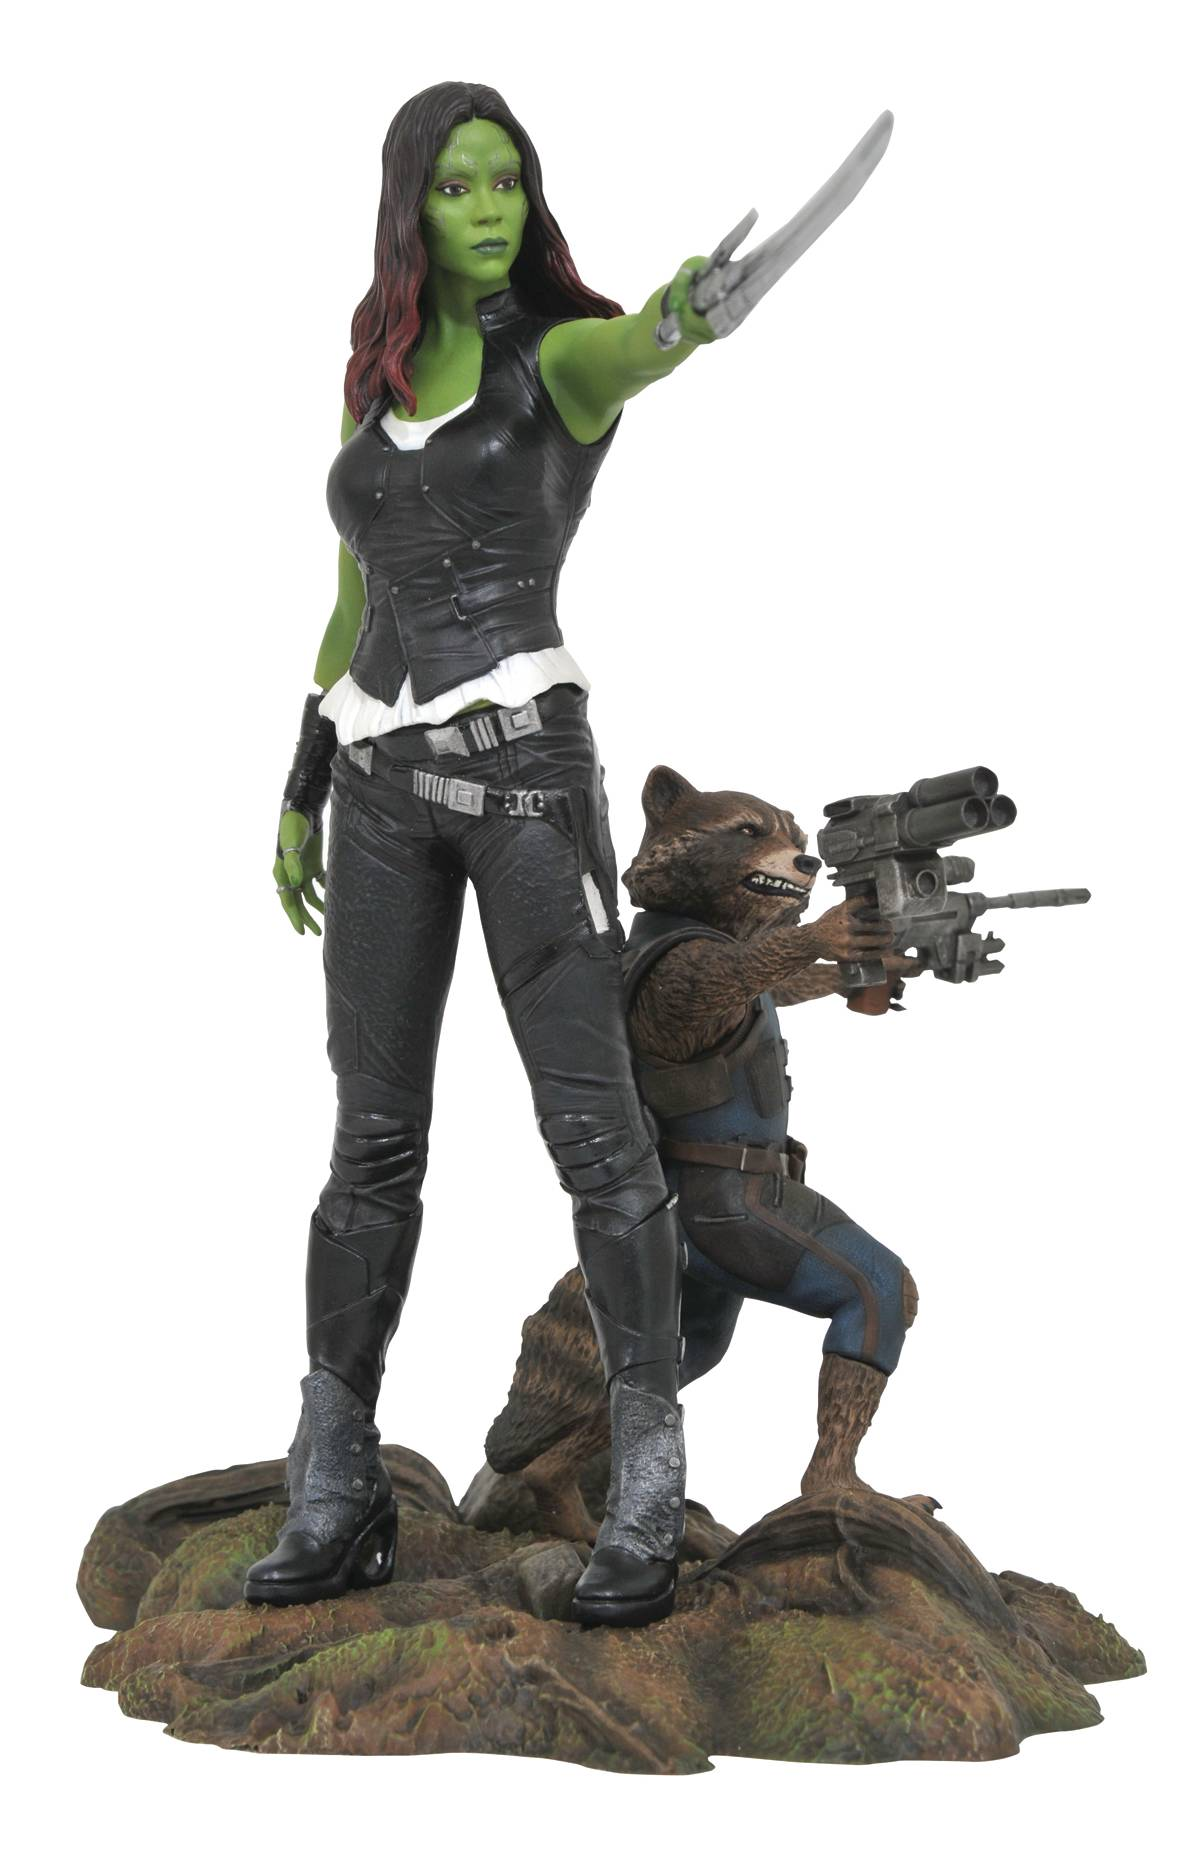 Diamon Marvel Gallery Guardians of the Galaxy 2 Gamora & Rocket